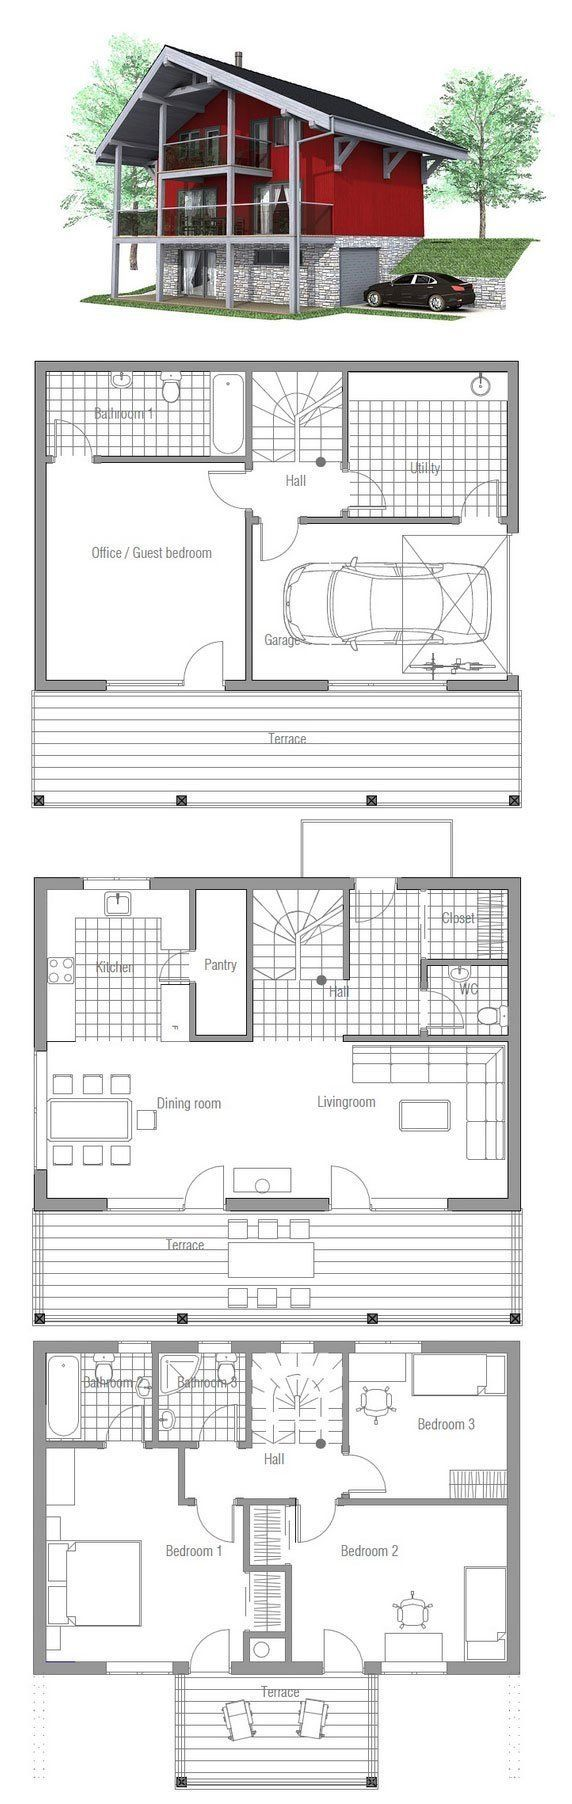 I absolutely love everything about this floor plan, i would just change a few things to make it more spacious. A two car garage, and a huge master bedroom.